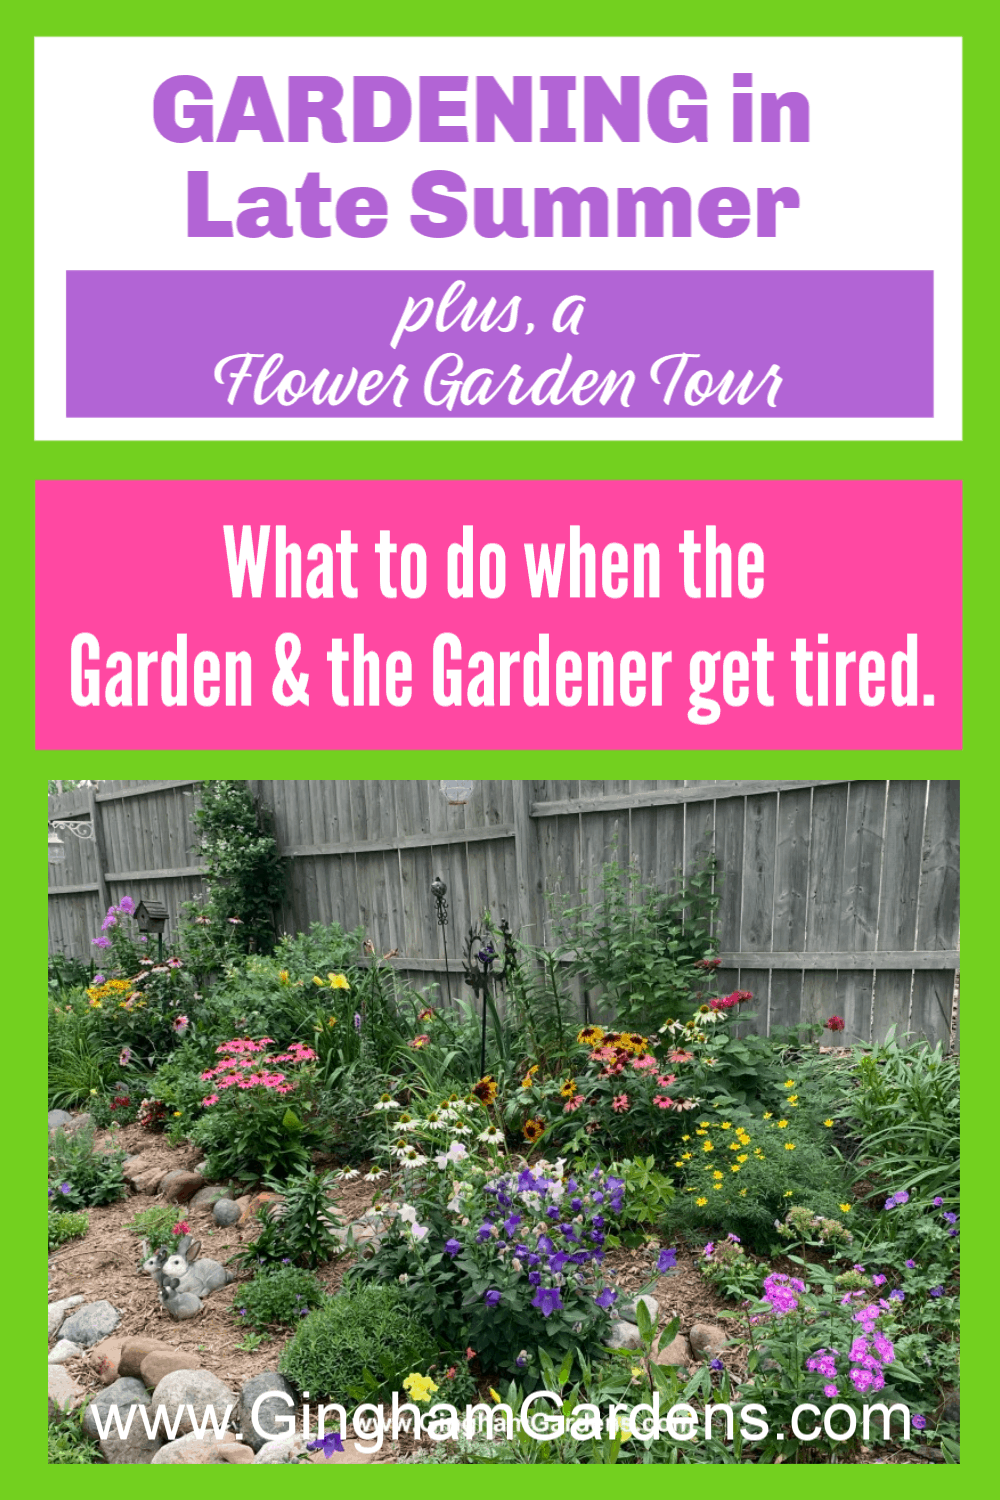 Image of a Flower Garden with text overlay - Tips for Gardening in Late Summer